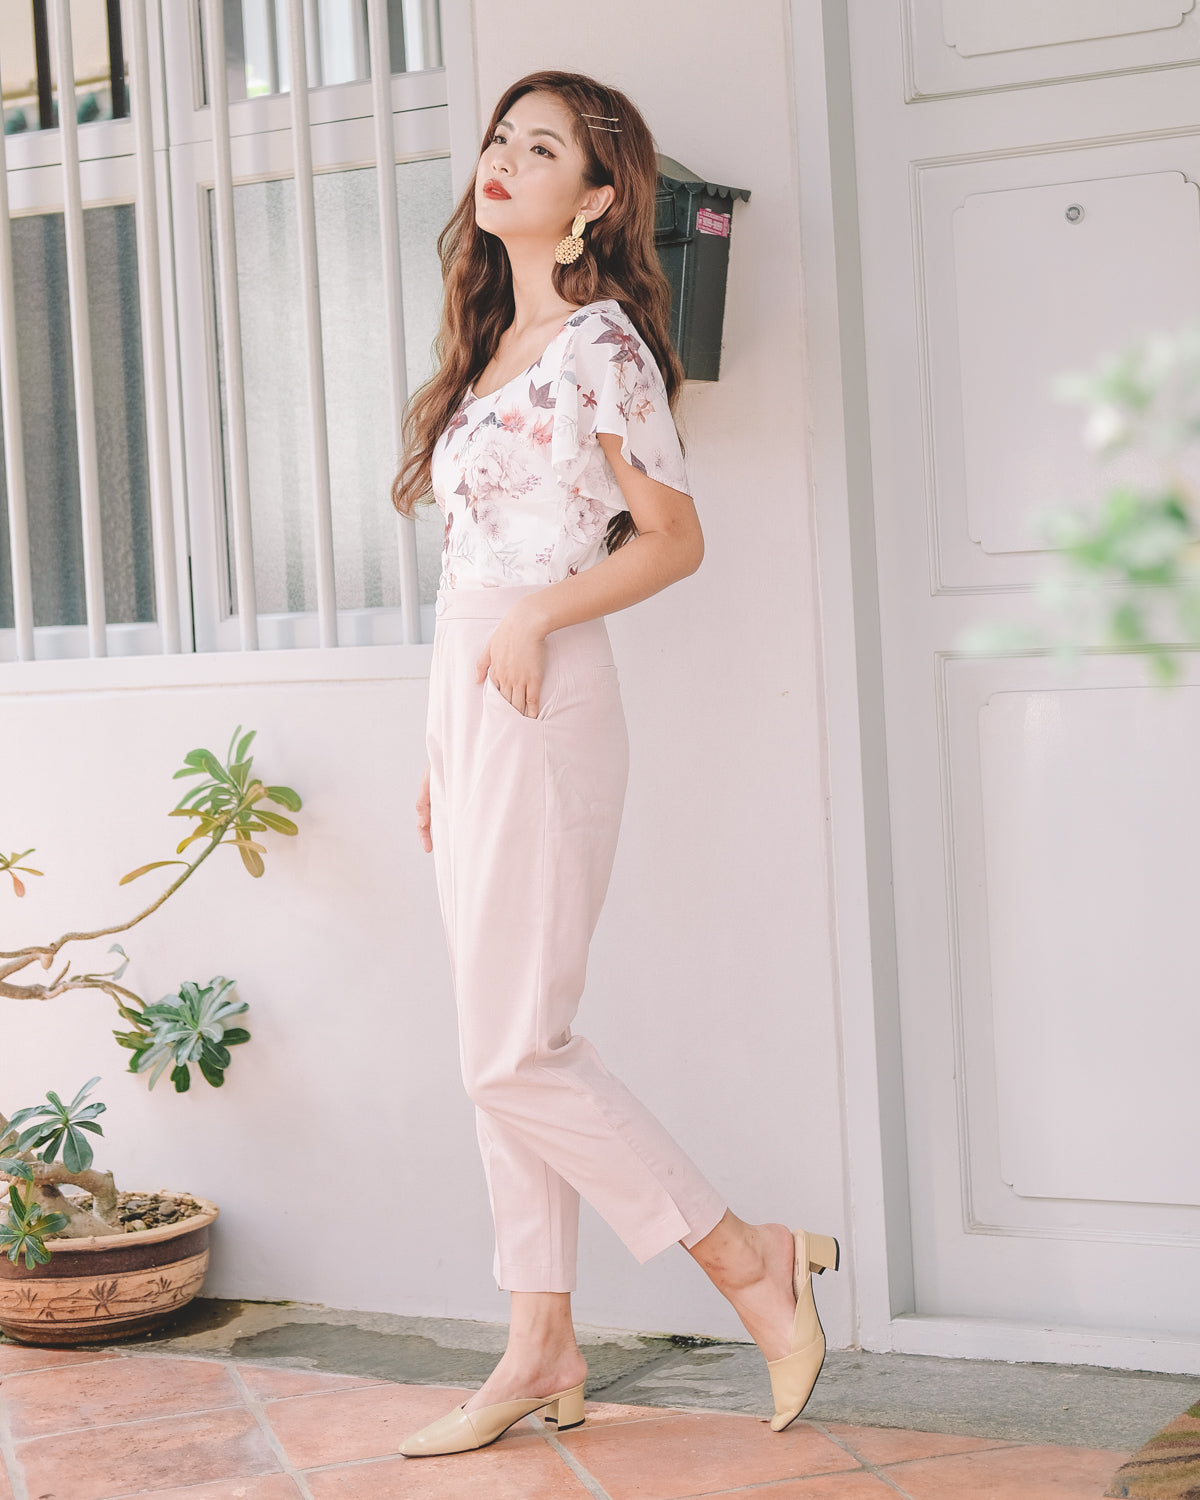 What to wear with pale pink pants